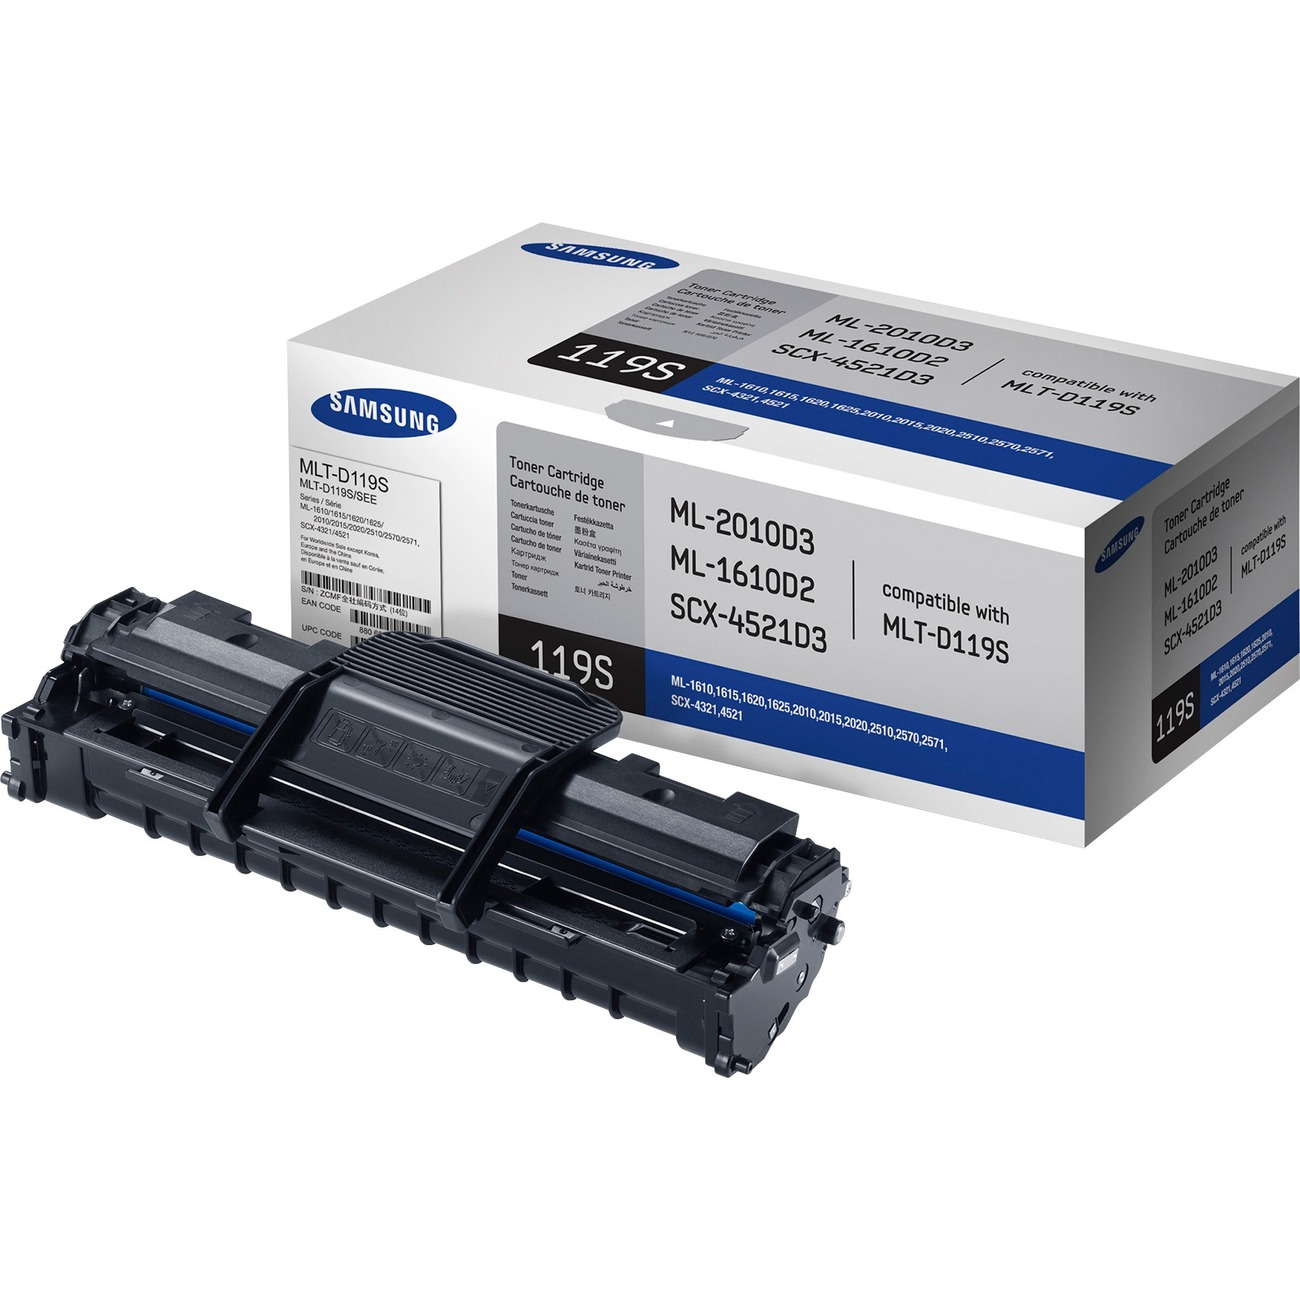 For ML-1610 Printers Supply Spot Compatible Samsung ML1610D2 Toners 3 Pack